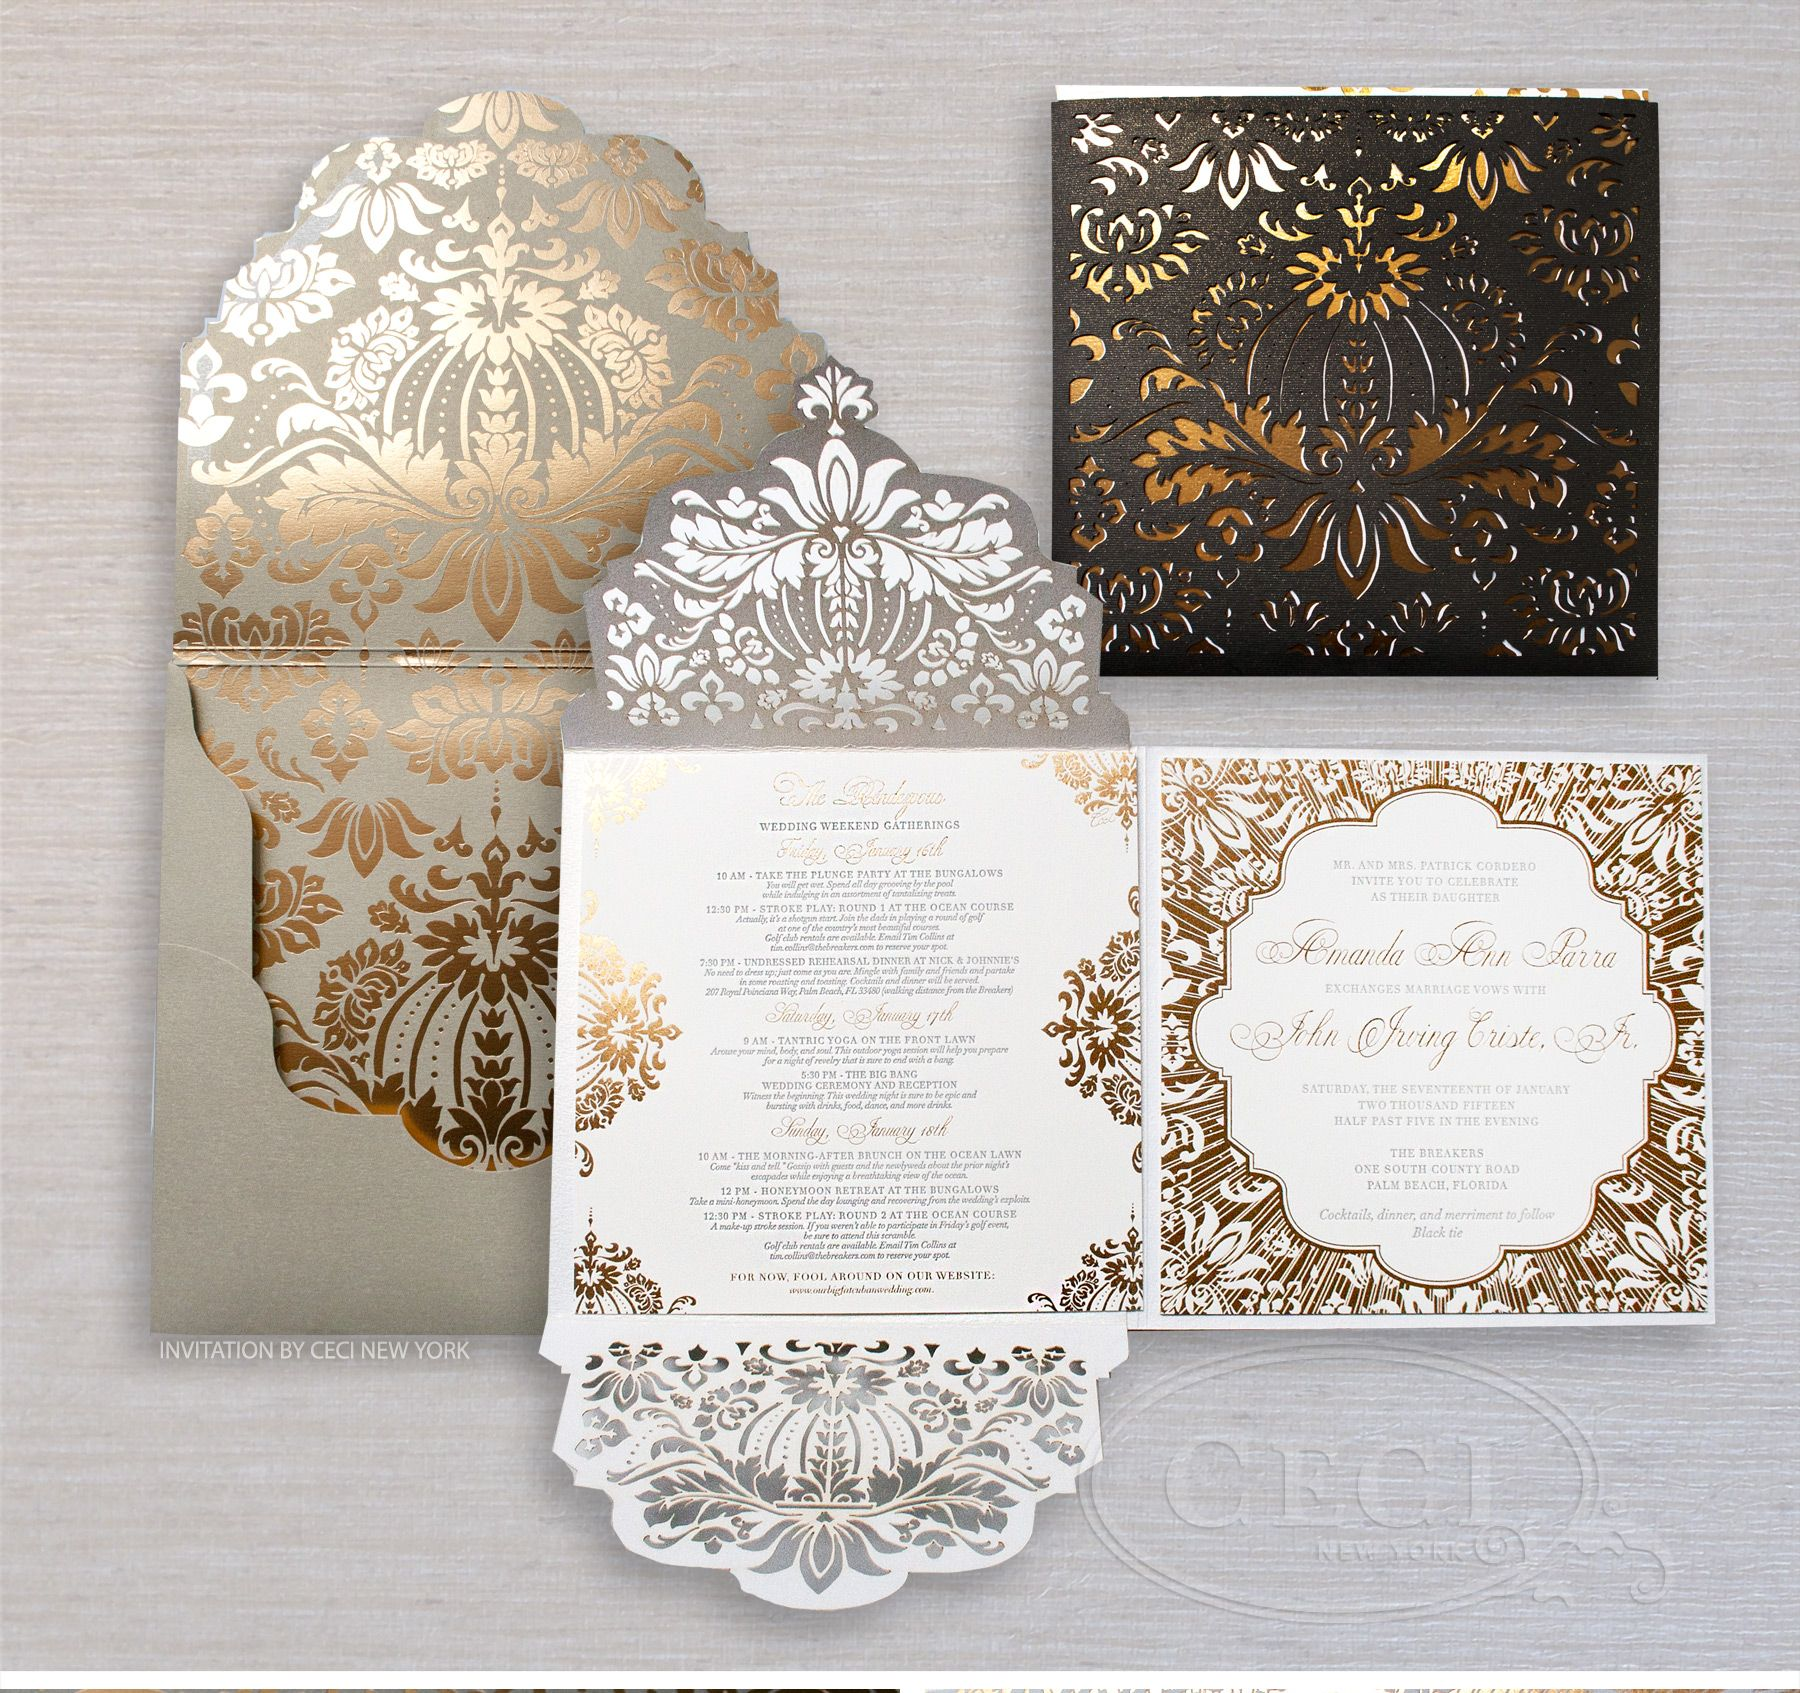 Luxury Wedding Invitations By Ceci New York Our Muse Gold And Black At The Breakers Be Inspired Amanda Joe S Uniquely Glamorous